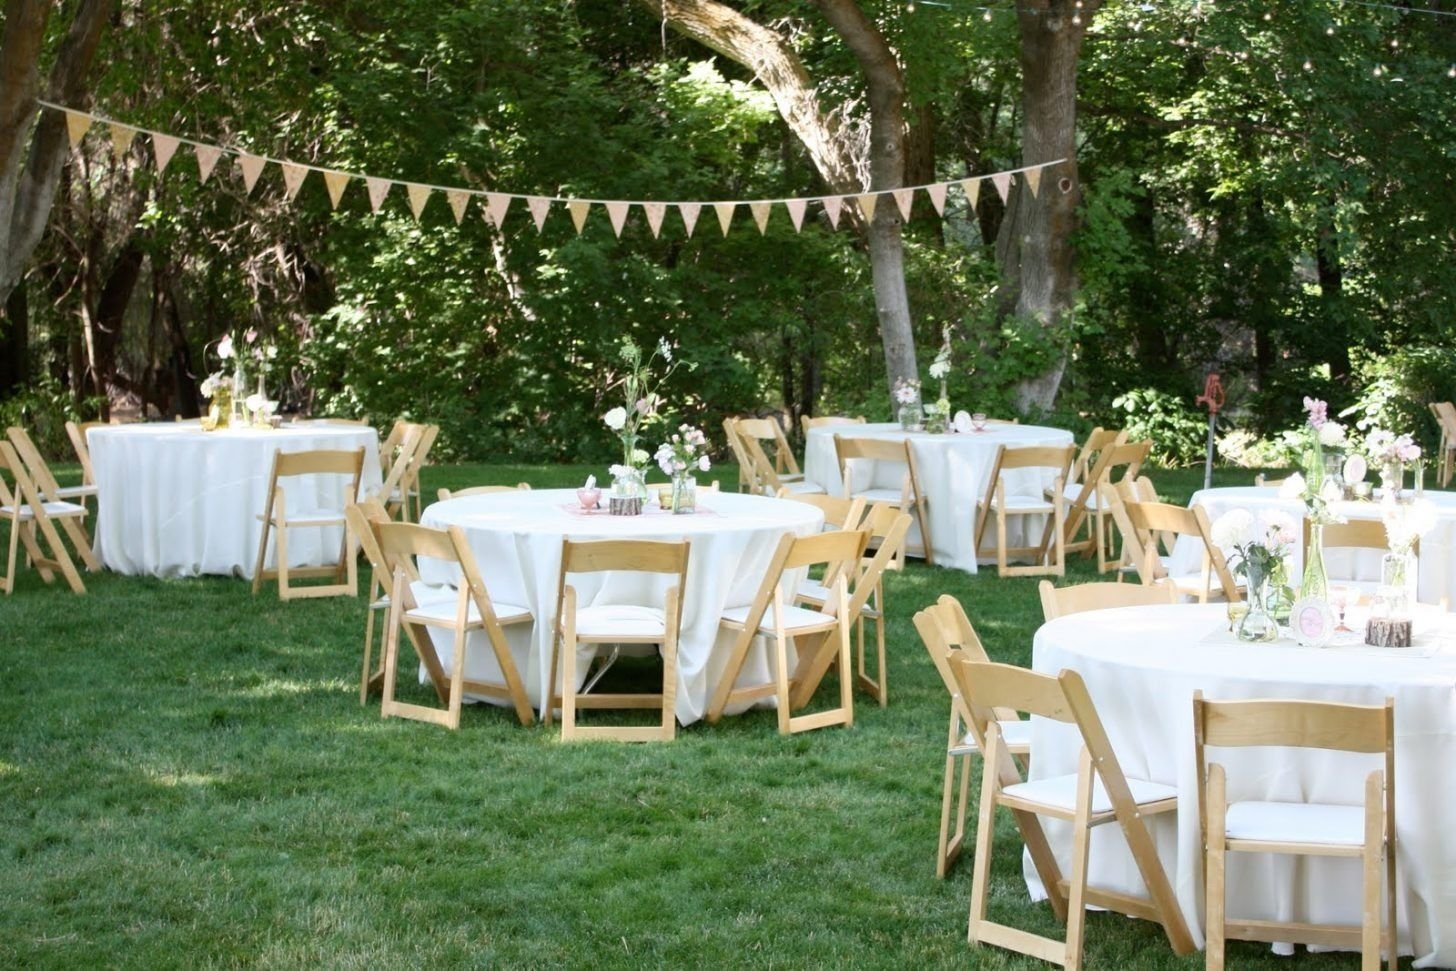 10 Cute Backyard Wedding Ideas For Summer. Landscaping Ideas For A Backyard With A Hill. Costume Ideas Video Game Character. Kitchen Design Ideas Hdb. Yard Ideas Pictures. Diy Ideas From Recycled Items. Small Gravel Backyard Ideas. Design Ideas Open Concept Living Room. Tattoo Ideas Gangster